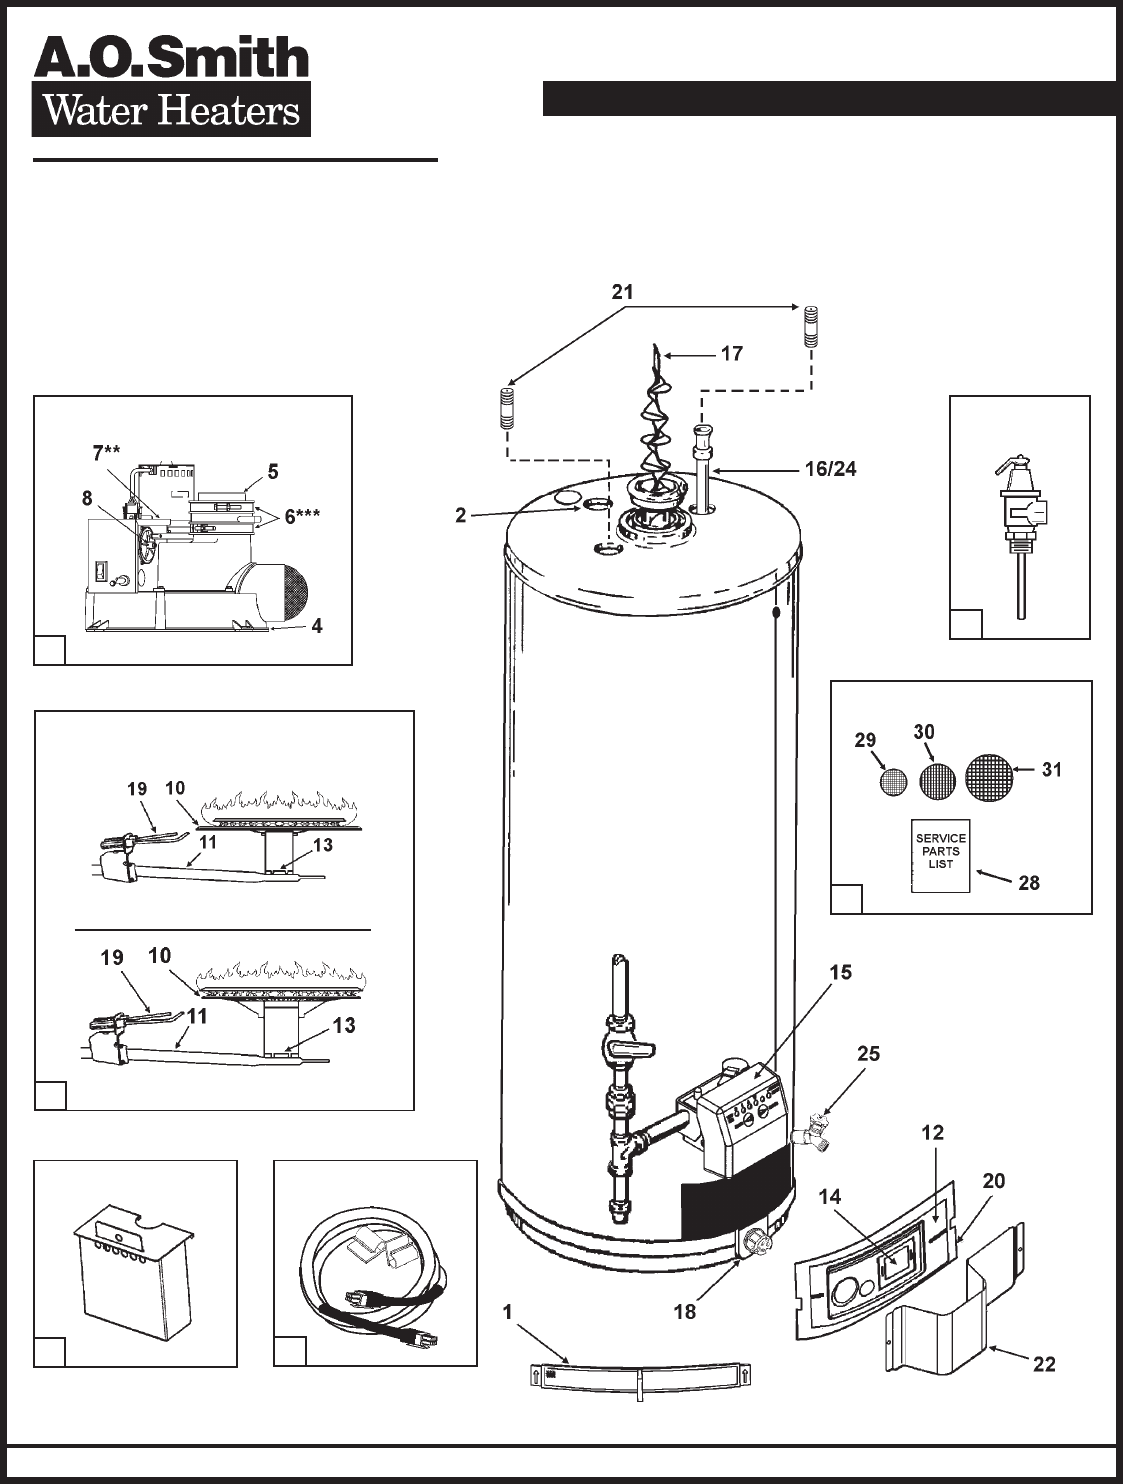 Ao smith water heater 100 series user guide manualsonline ao smith water heater parts fulfillment phone 1 800 433 2525 hotwater ccuart Image collections